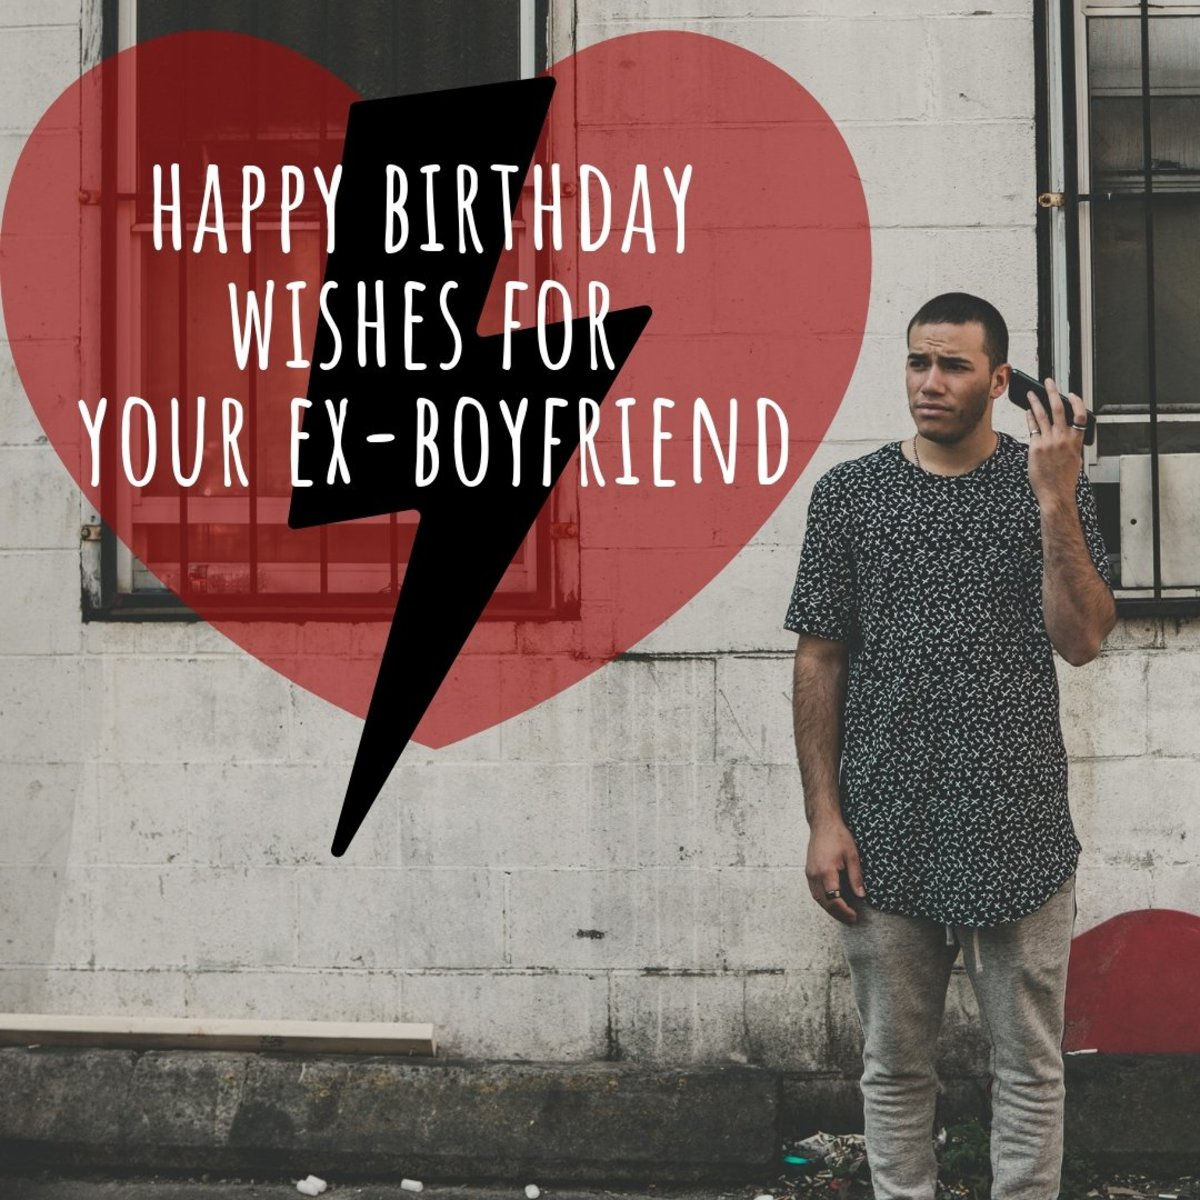 Happy Birthday Wishes for Your Ex-Boyfriend: Ideas for Short Wishes, Messages, and Poems